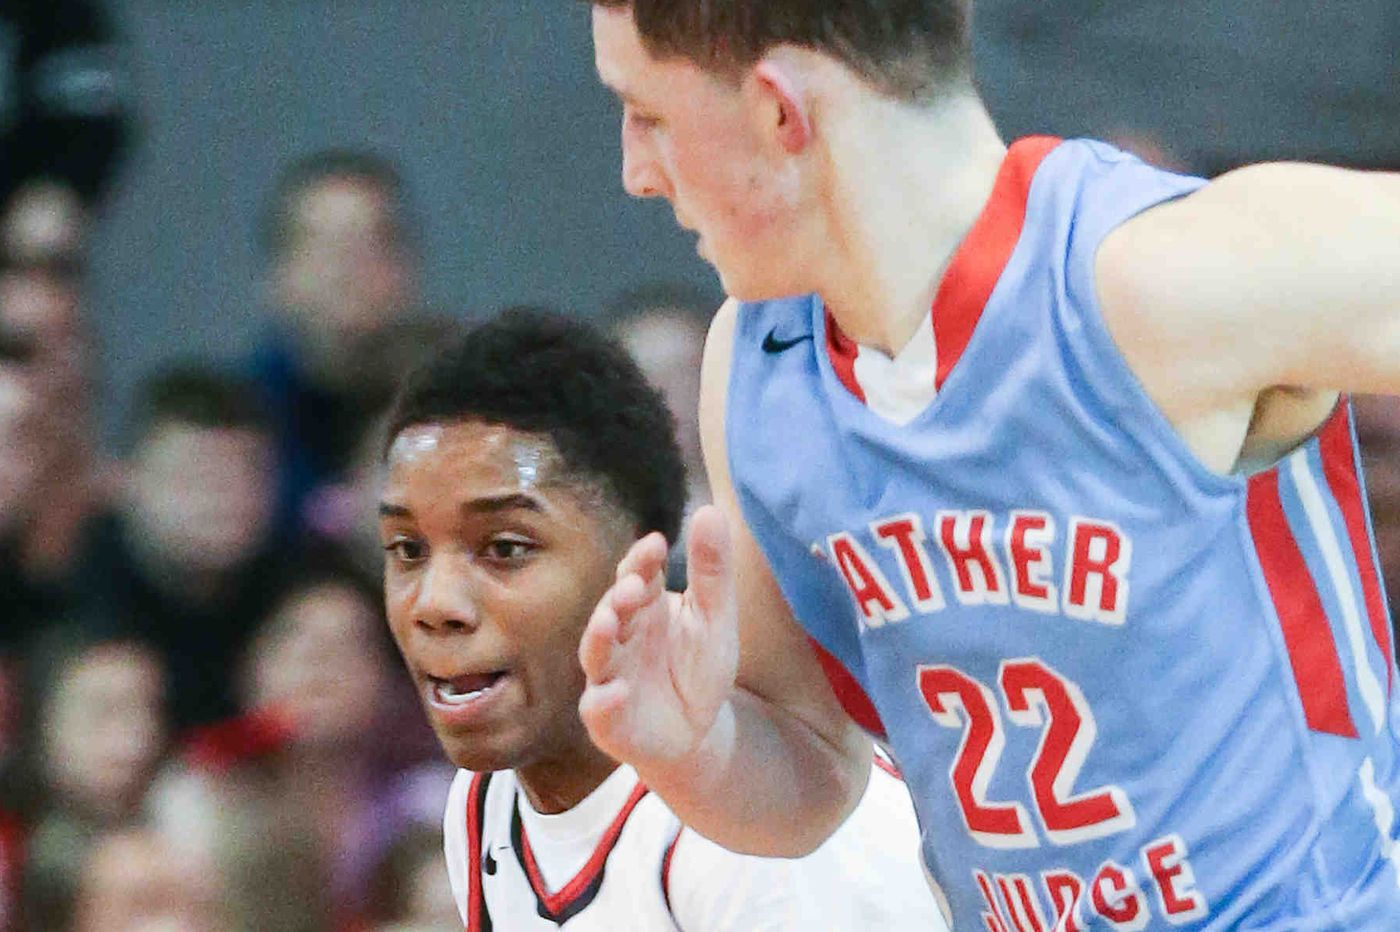 Friday's Southeastern Pa. roundup: Father Judge and Pope John Paul win on free throws in final seconds